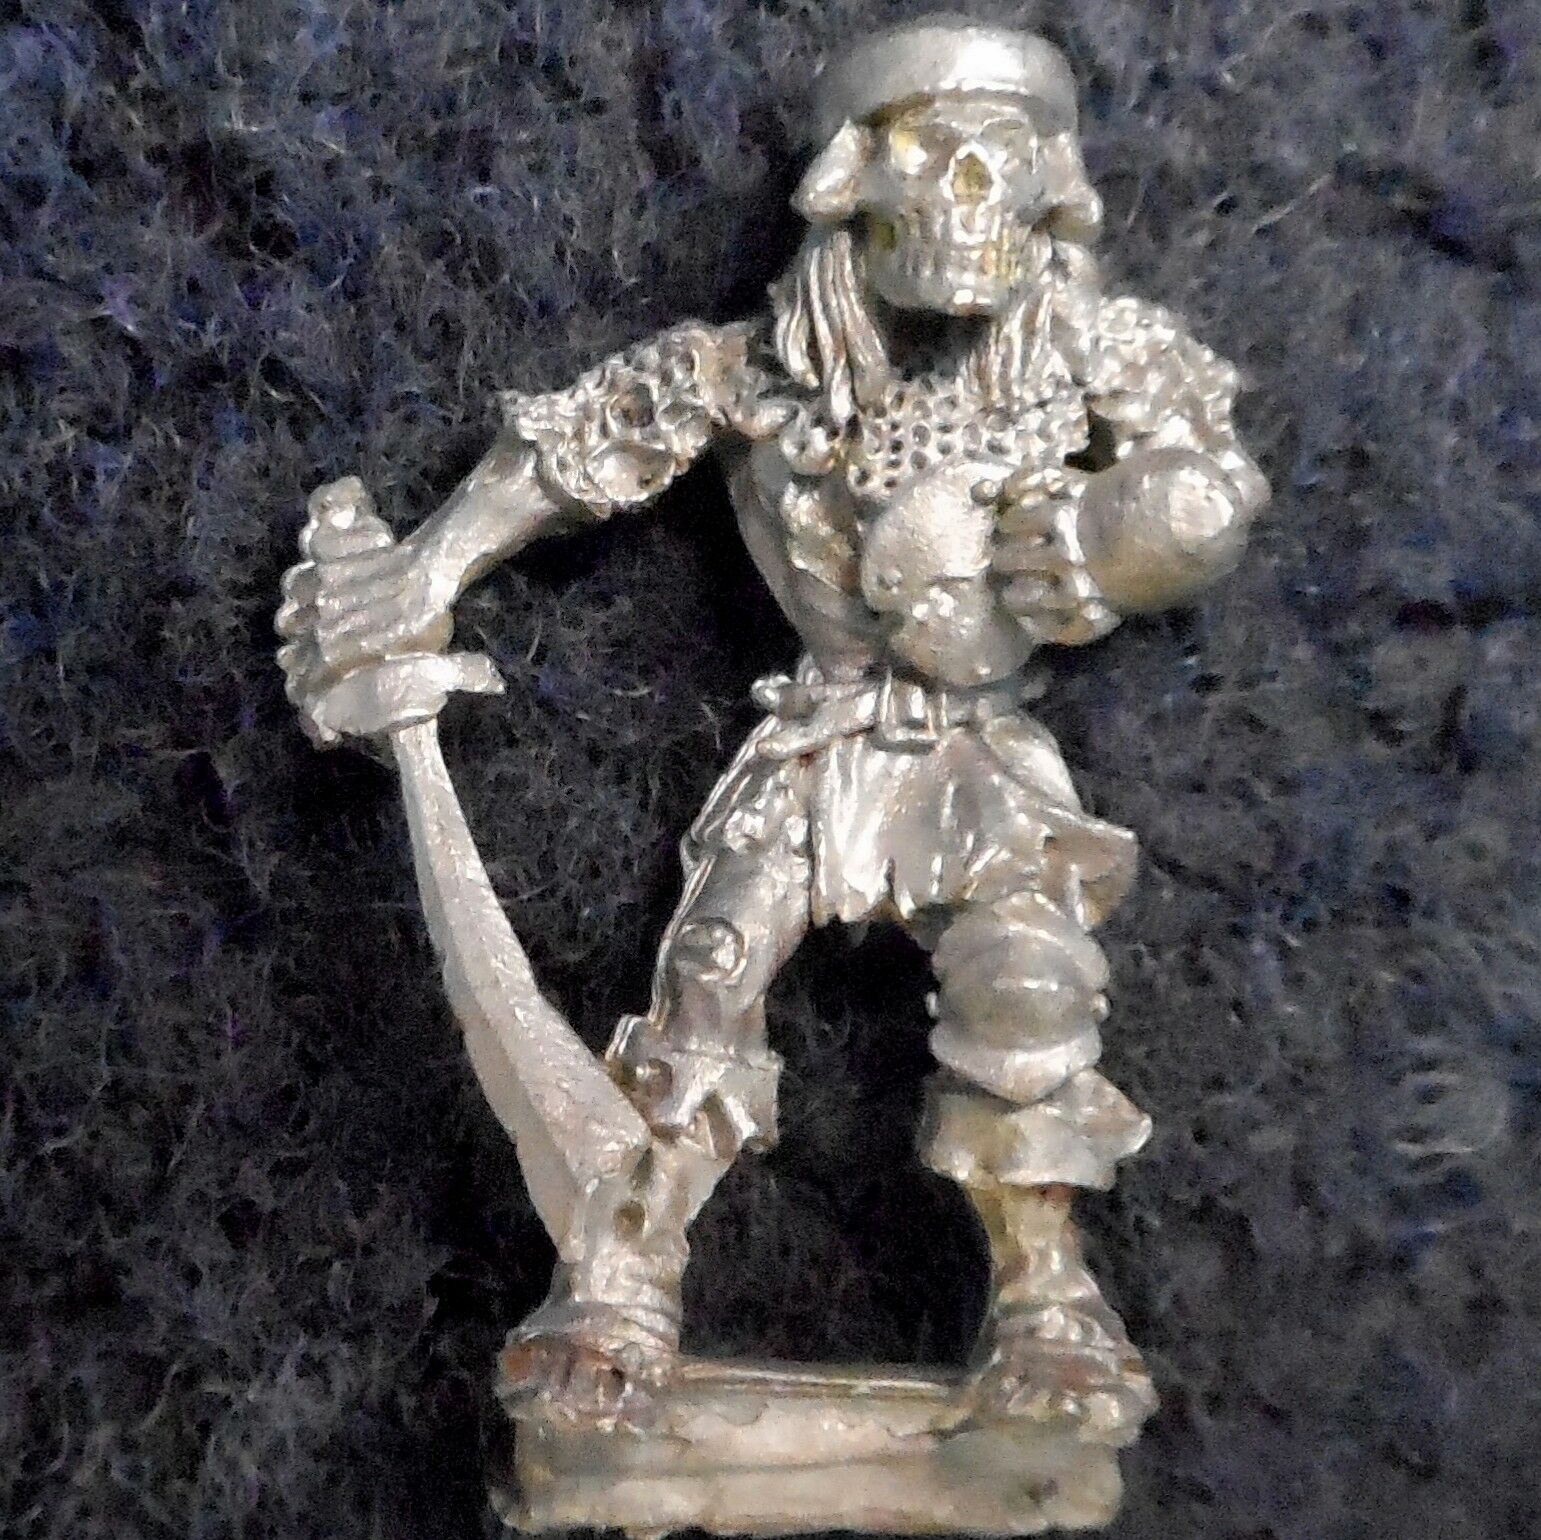 1985 Undead ME72 Sword 5 Dead Men of Dunharrow Lord of the Ring Skeleton Citadel